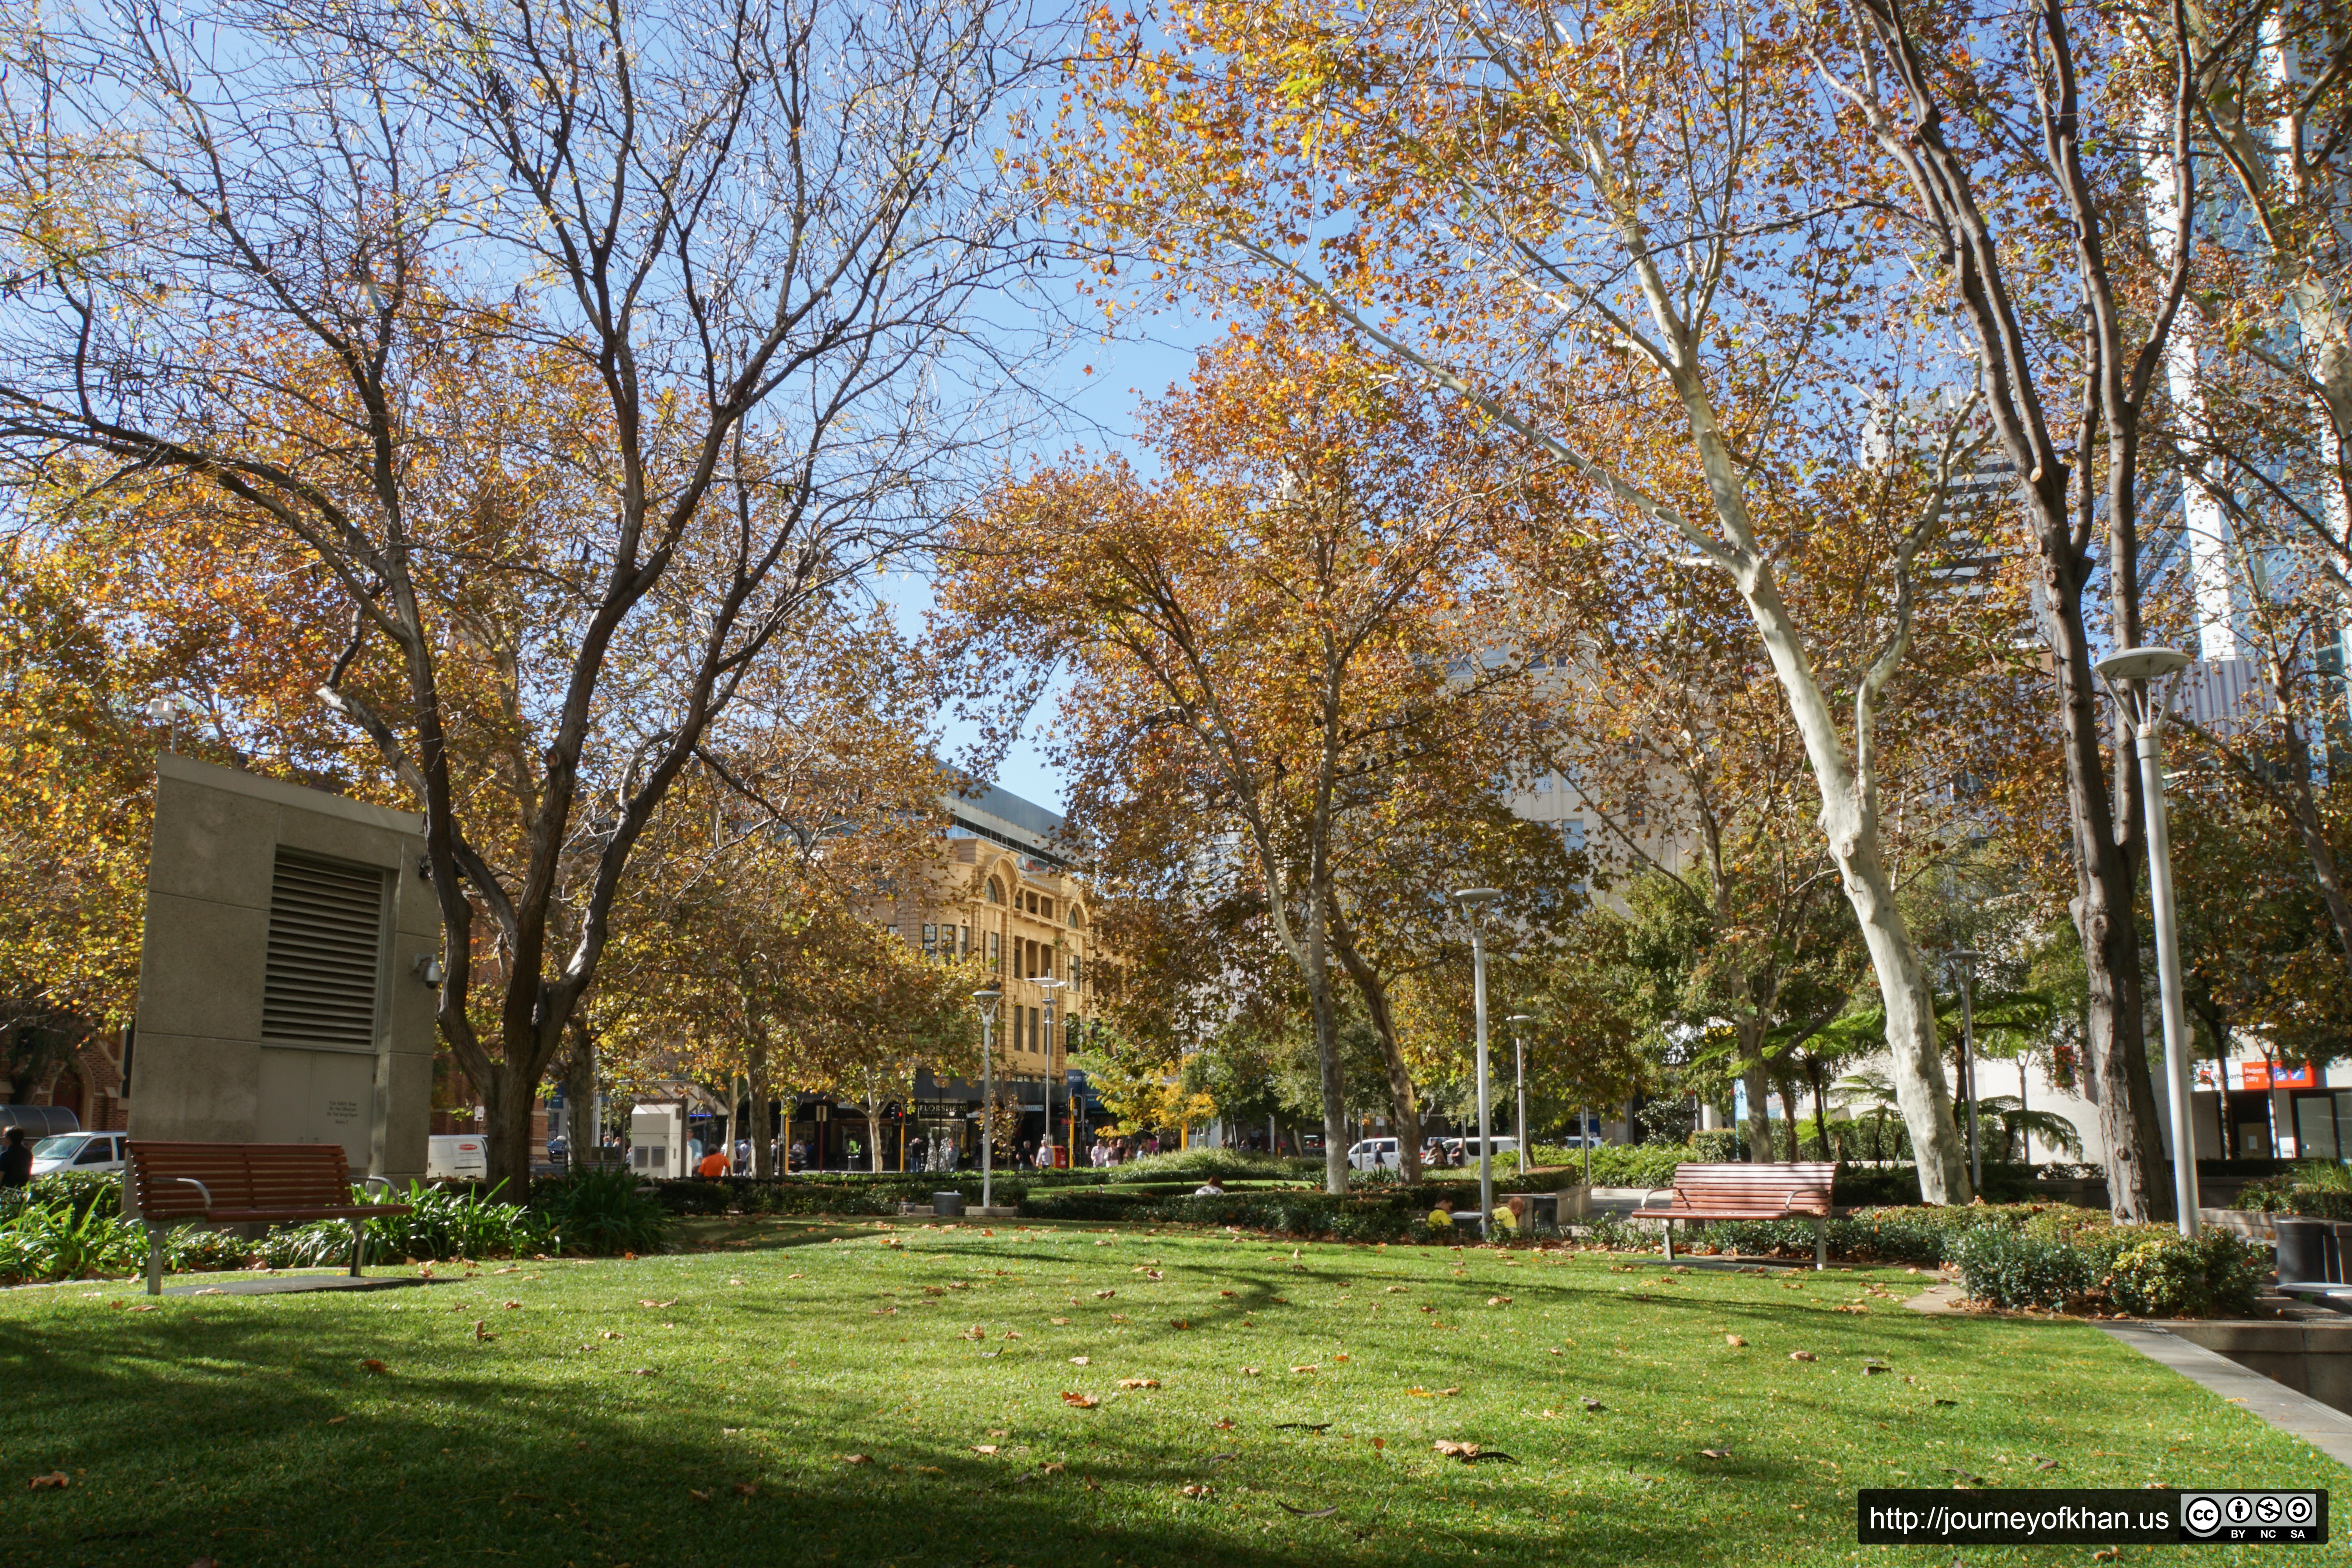 Park in the City of Perth (High Resolution)